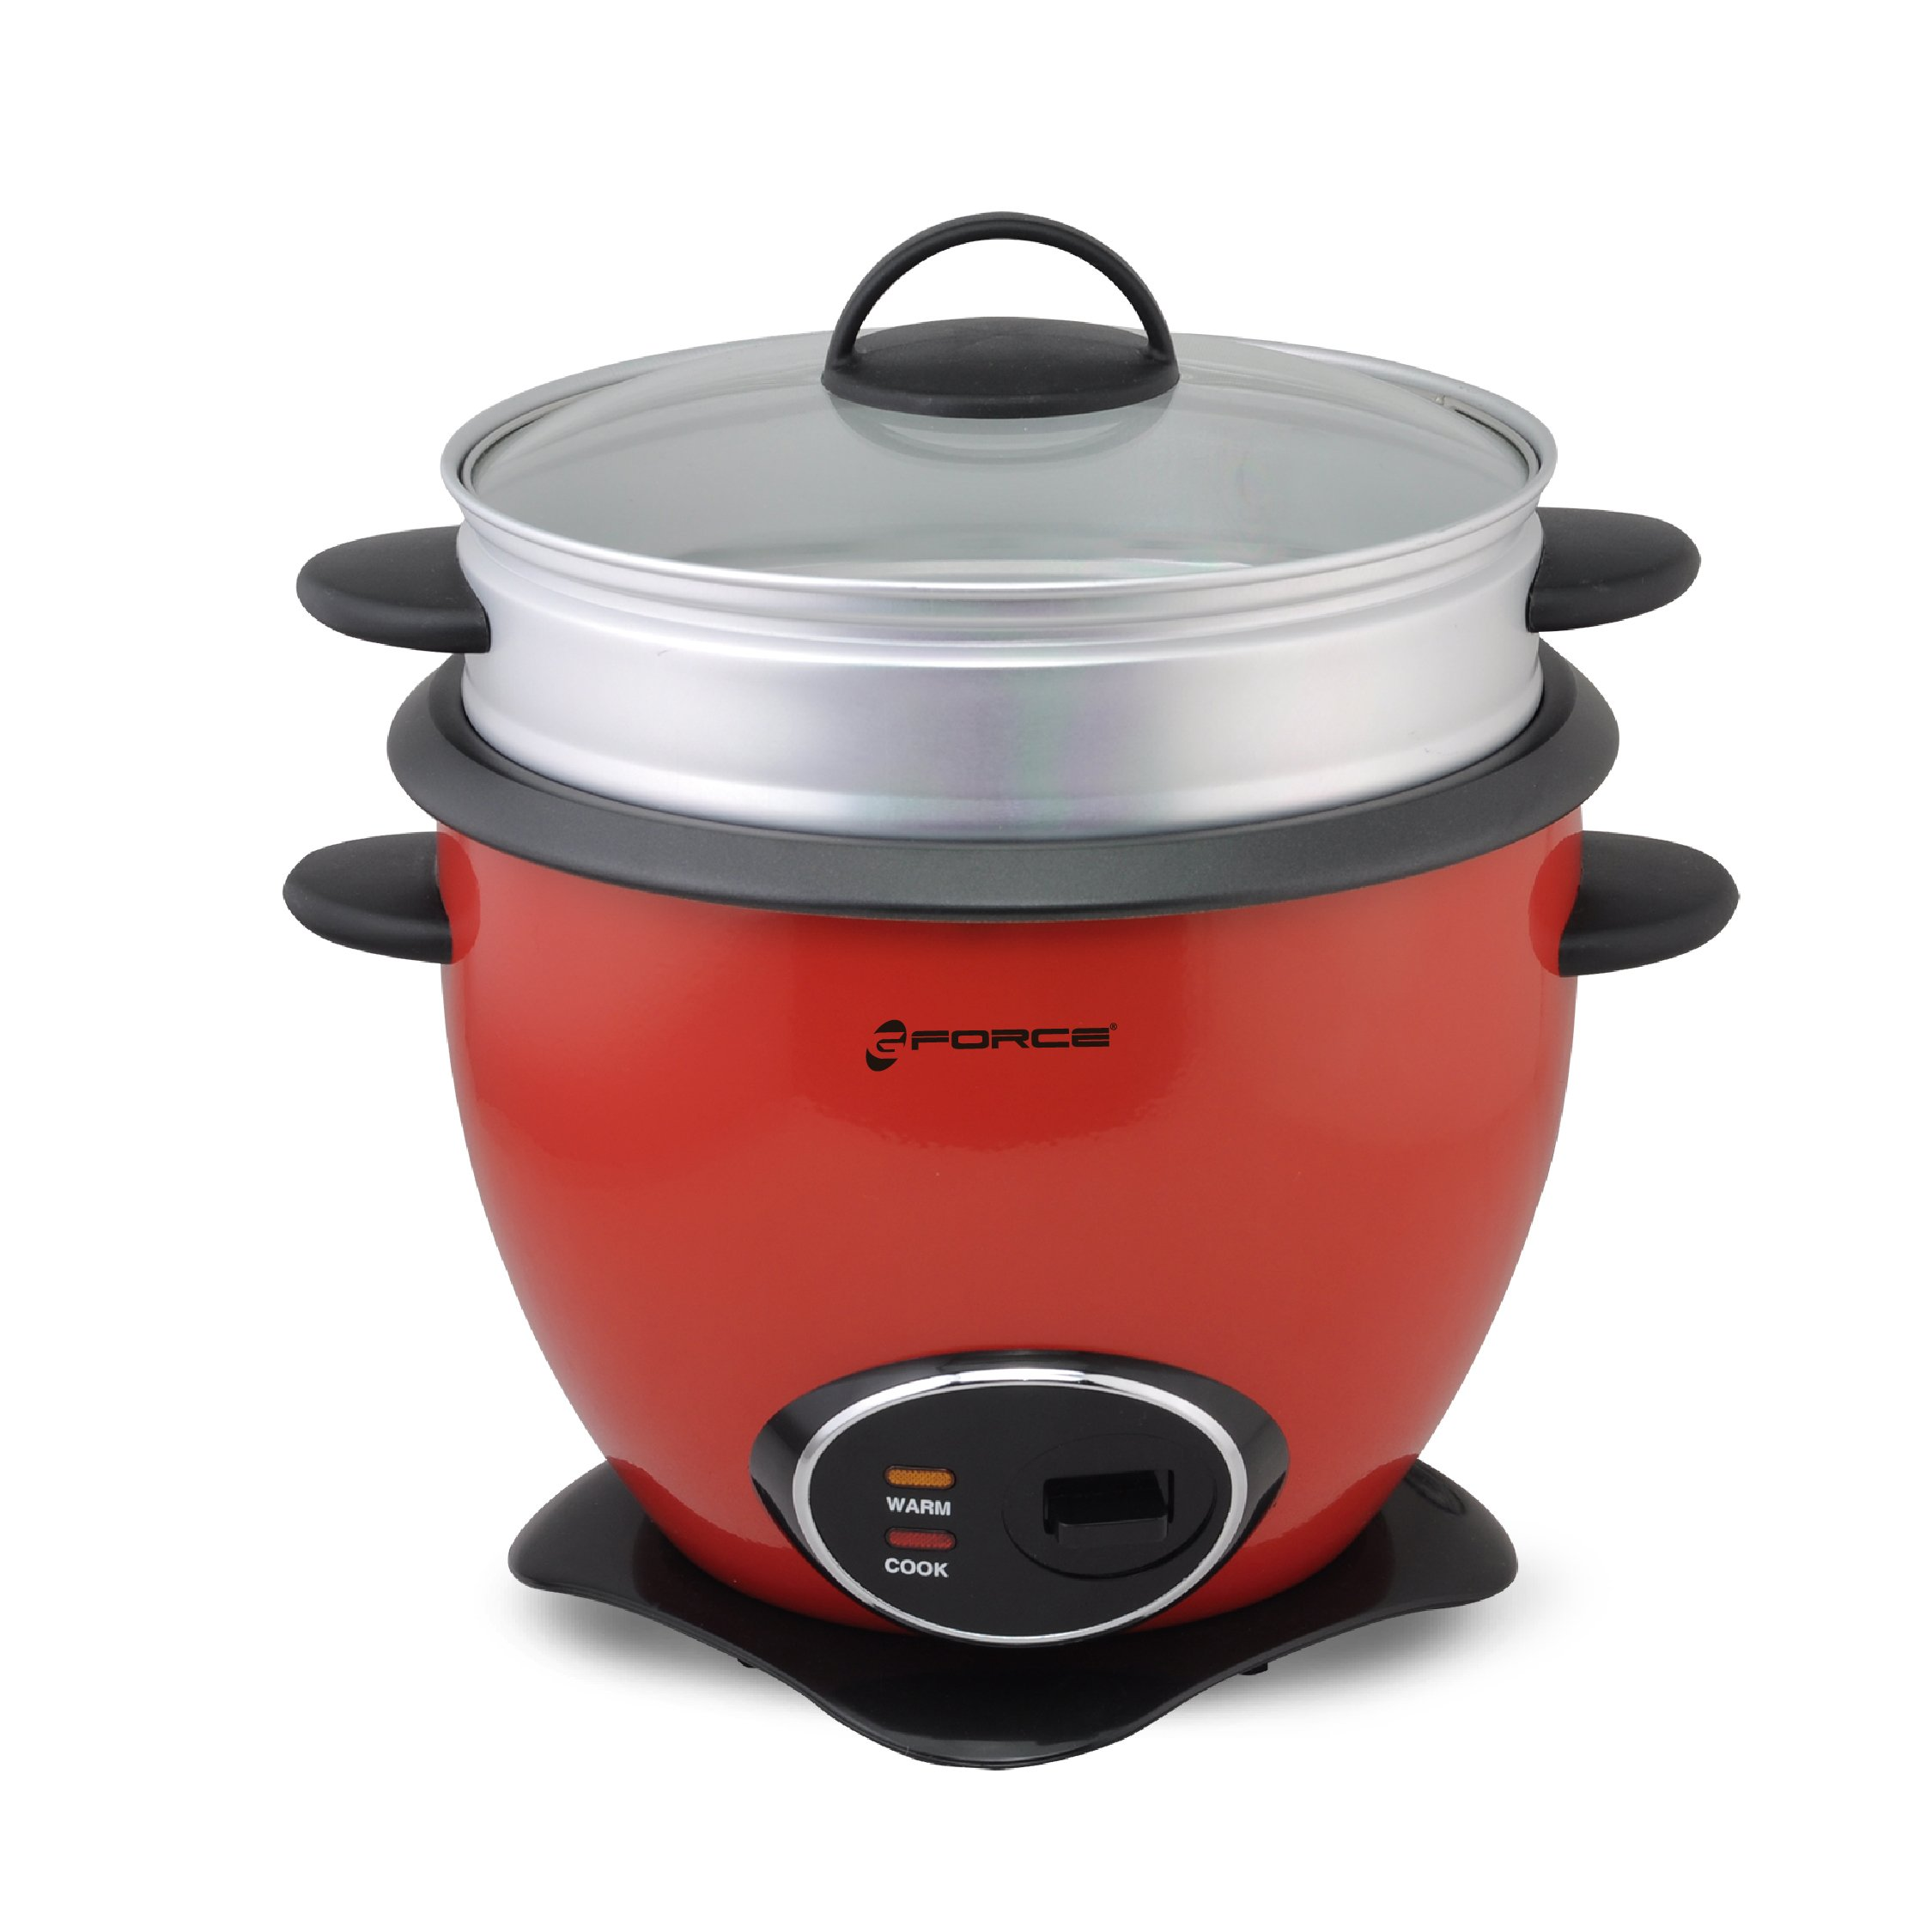 GForce Rice Cooker Aluminum Infused 1Liter/10 Cup Rice & Grain Cooker with Vegetable Steam Tray - Silver/Red